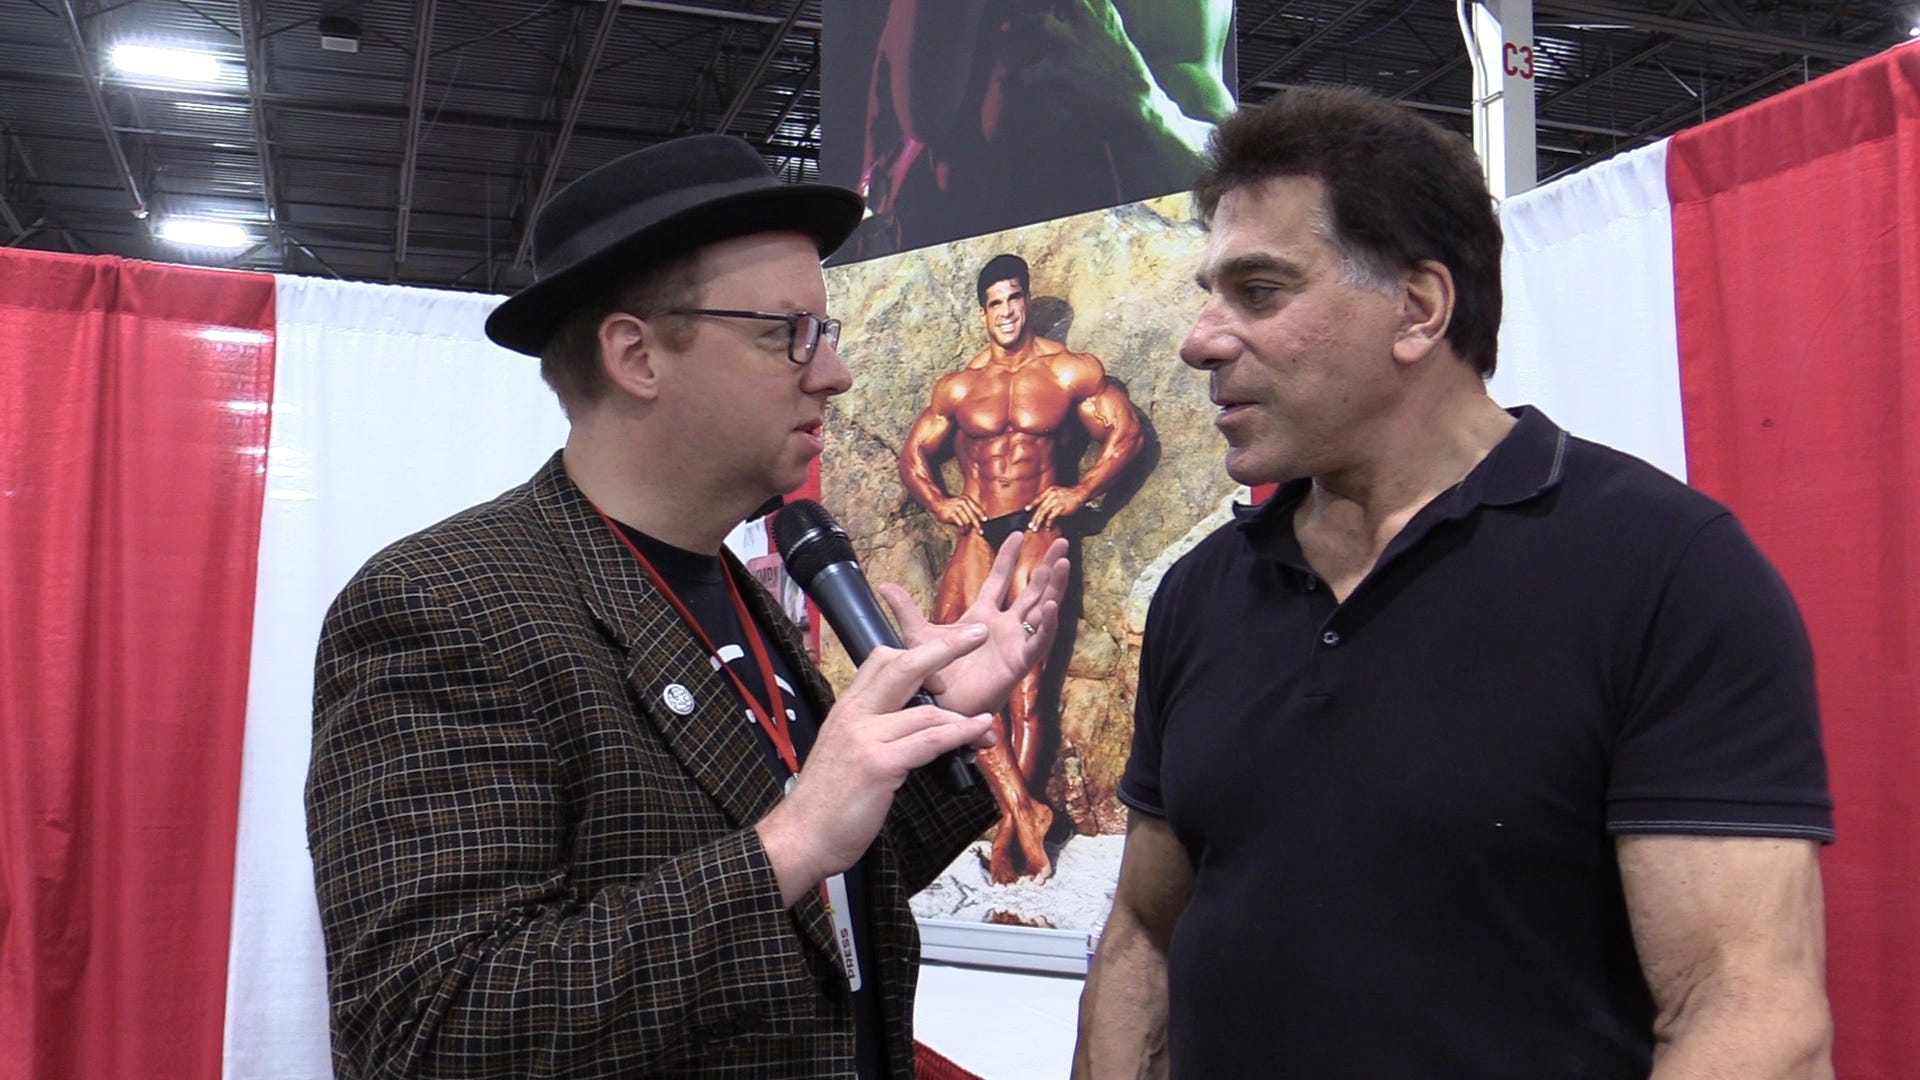 Lou Ferrigno at Motor City Comic Con 2019